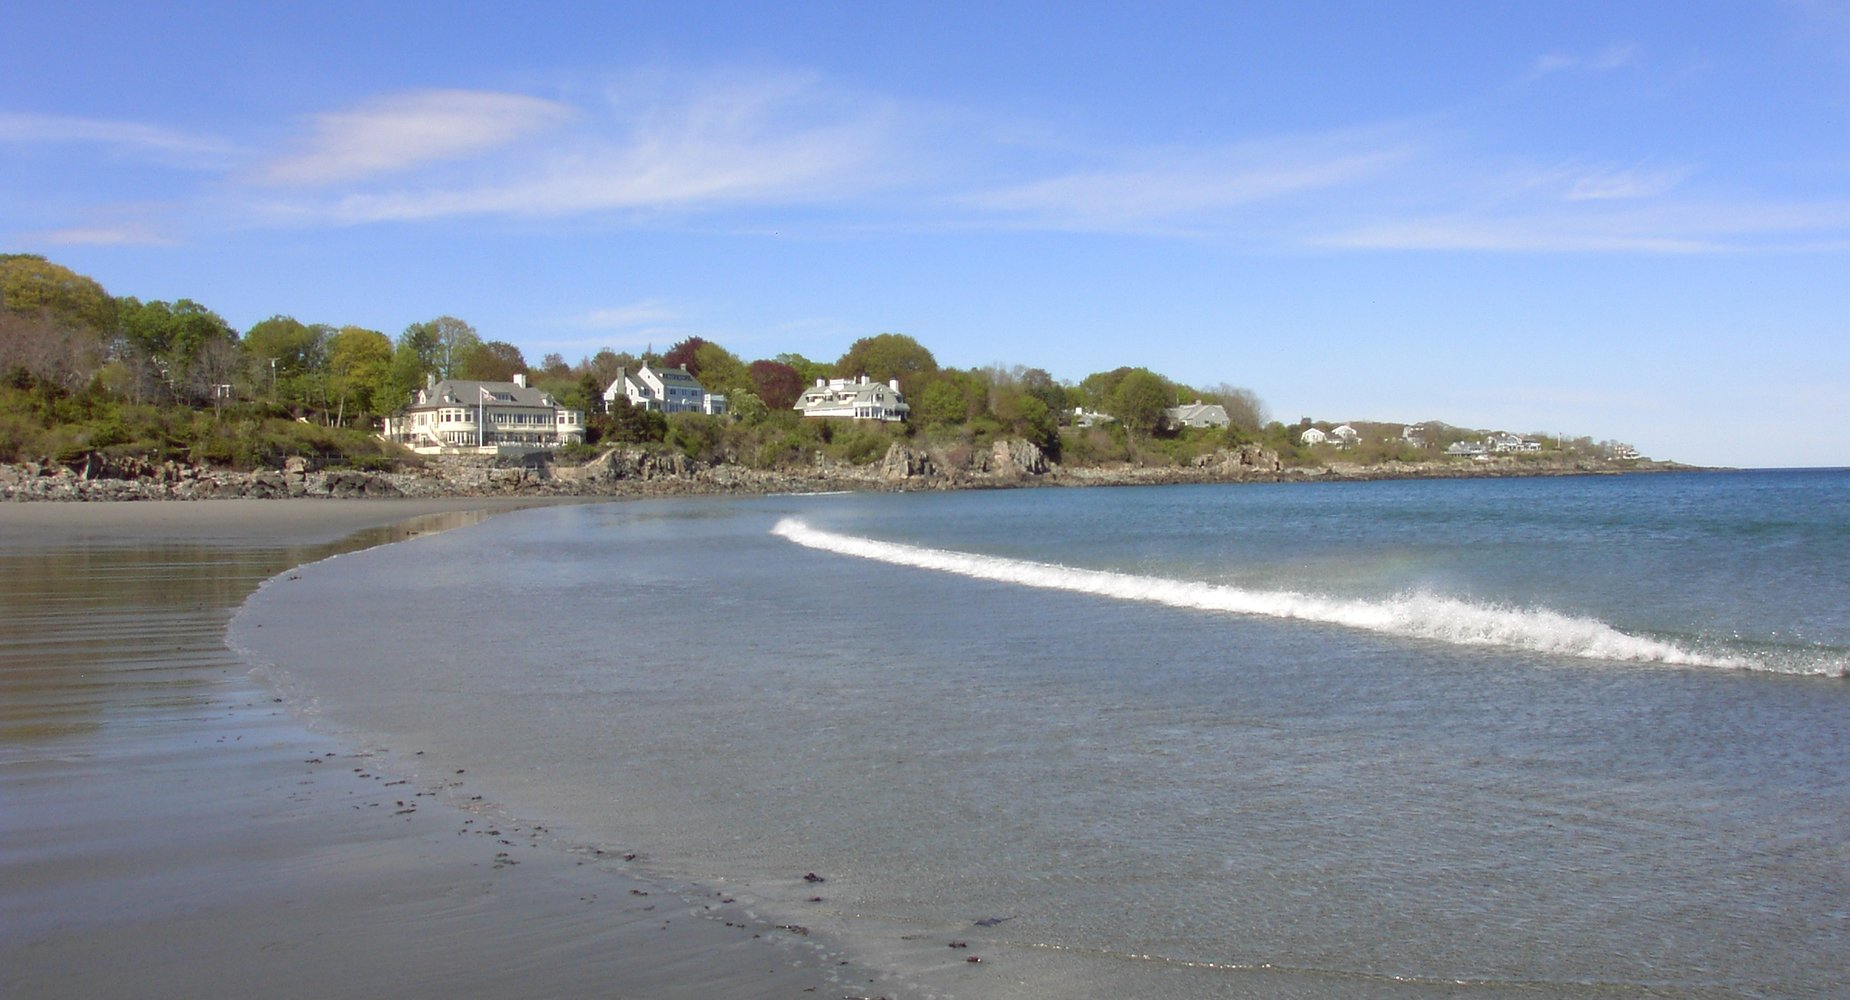 York Harbor Beach is adjacent to the Inn. This gradual incline beach with tidal pools is an idyllic Summer setting. Adjacent to the beach is our outdoor swimming pool.